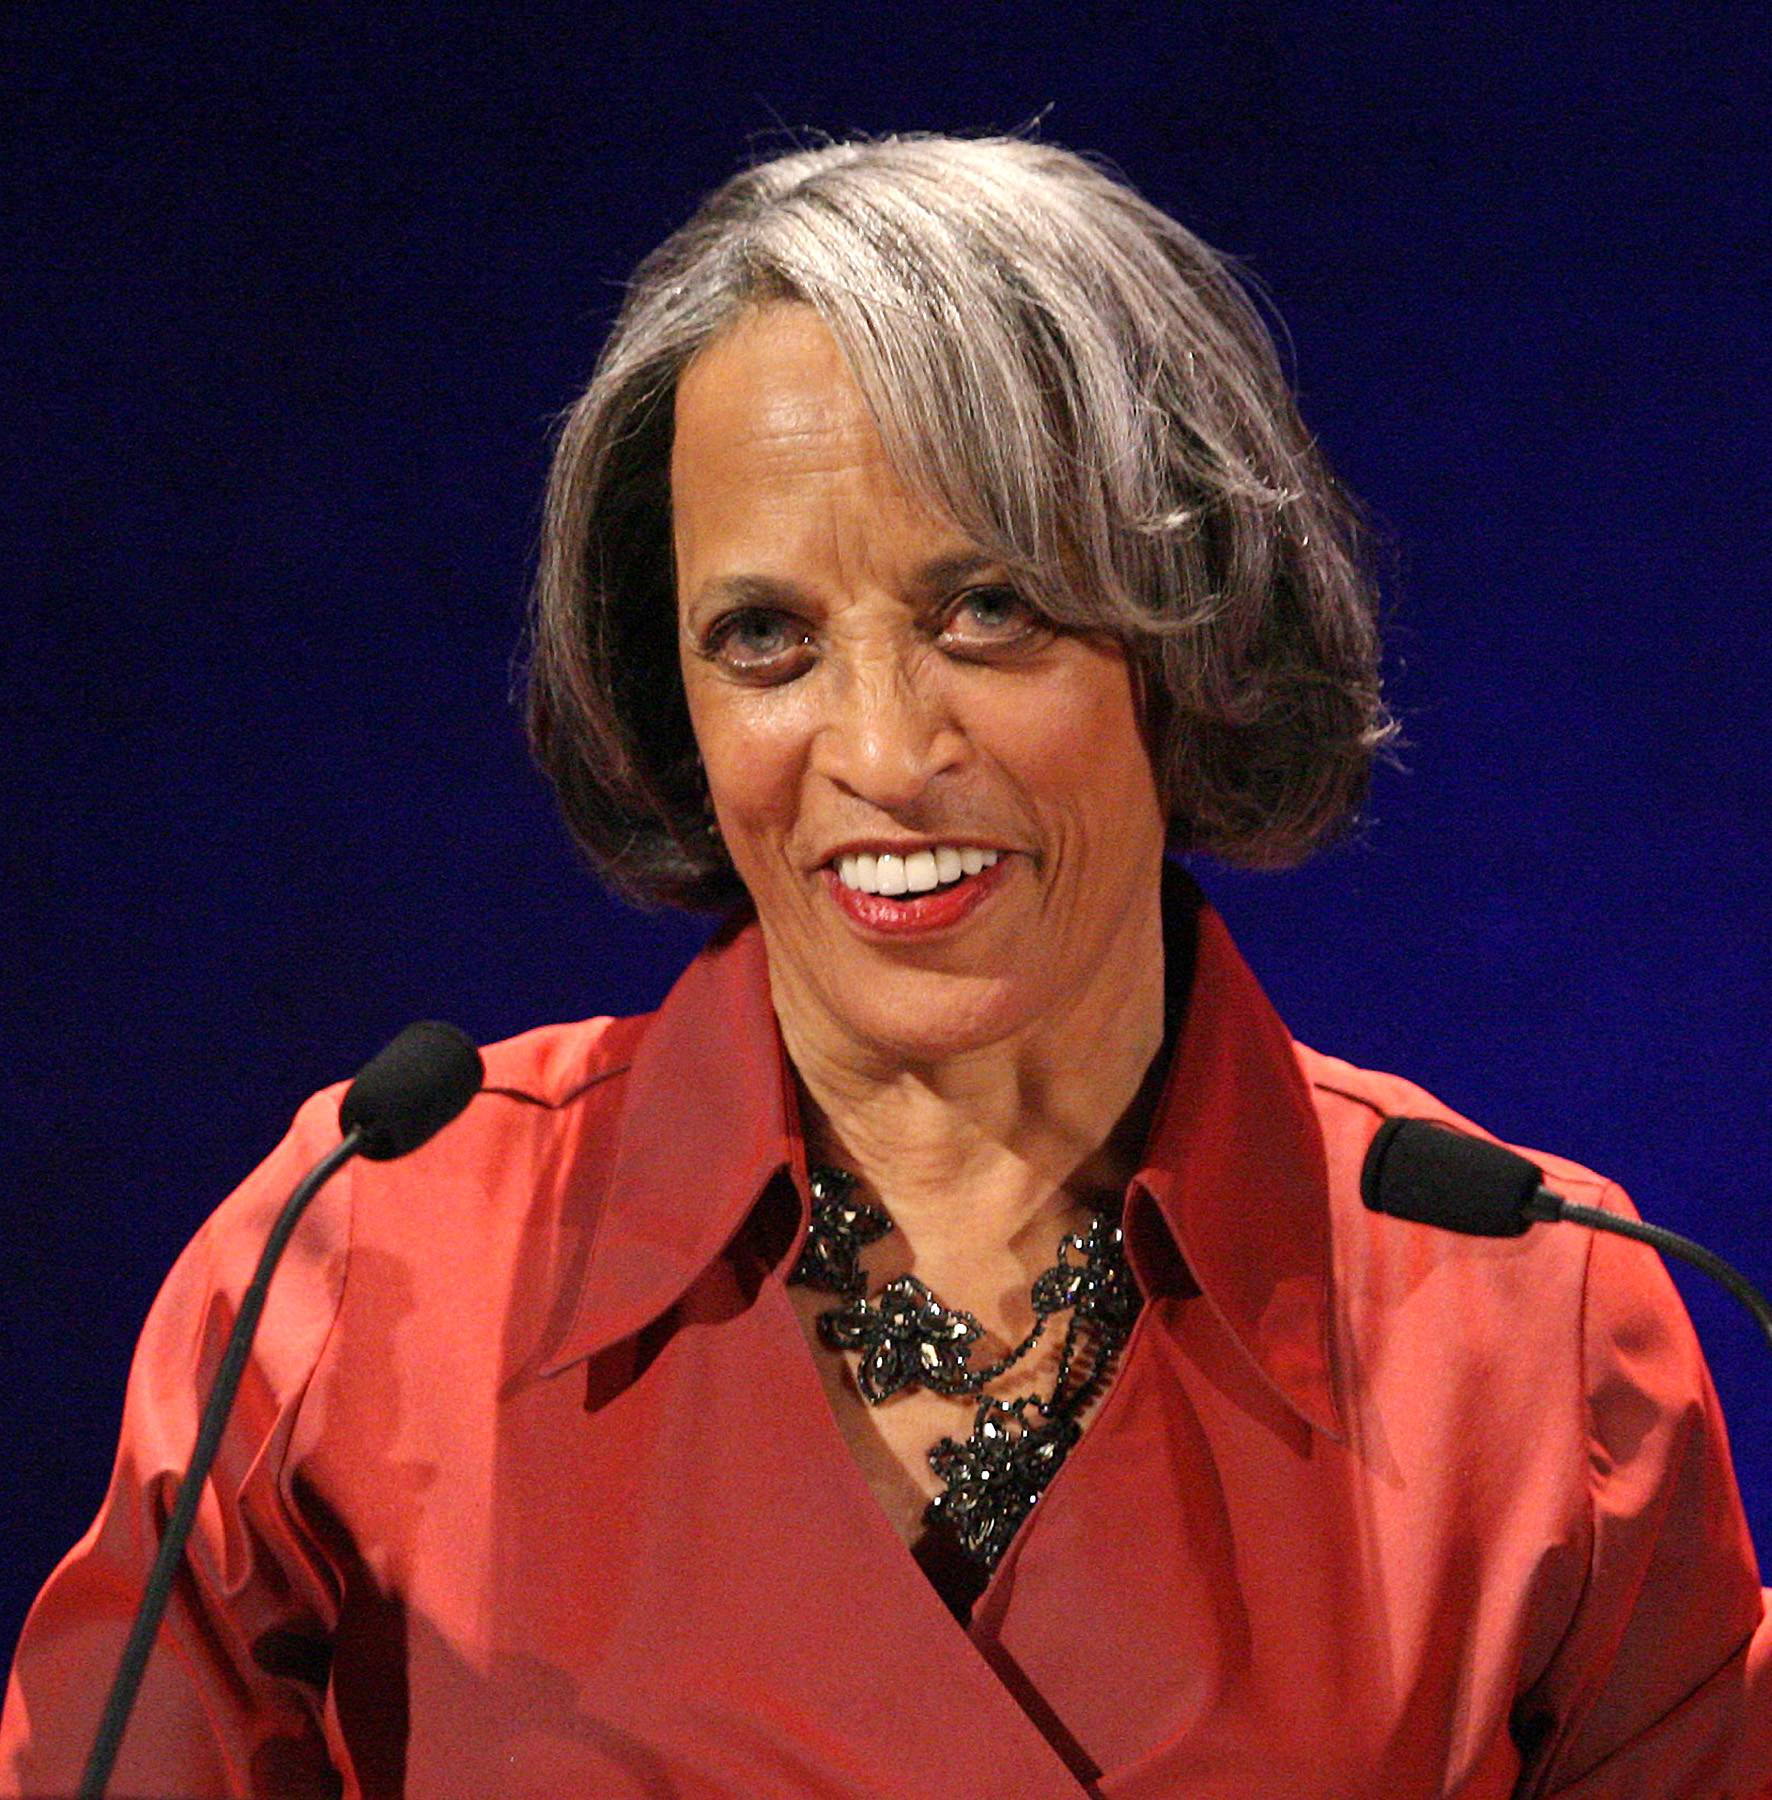 Johnnetta Cole - Although Washington is the epicenter of politics, it also has several world-renowned museums to which admission is free. At the helm of the National Museum of African Art is Johnnetta Cole, who was also Spelman College's first African-American female president.  (Photo: Bryan Bedder/Getty Images for the Jackie Robinson Foundation)